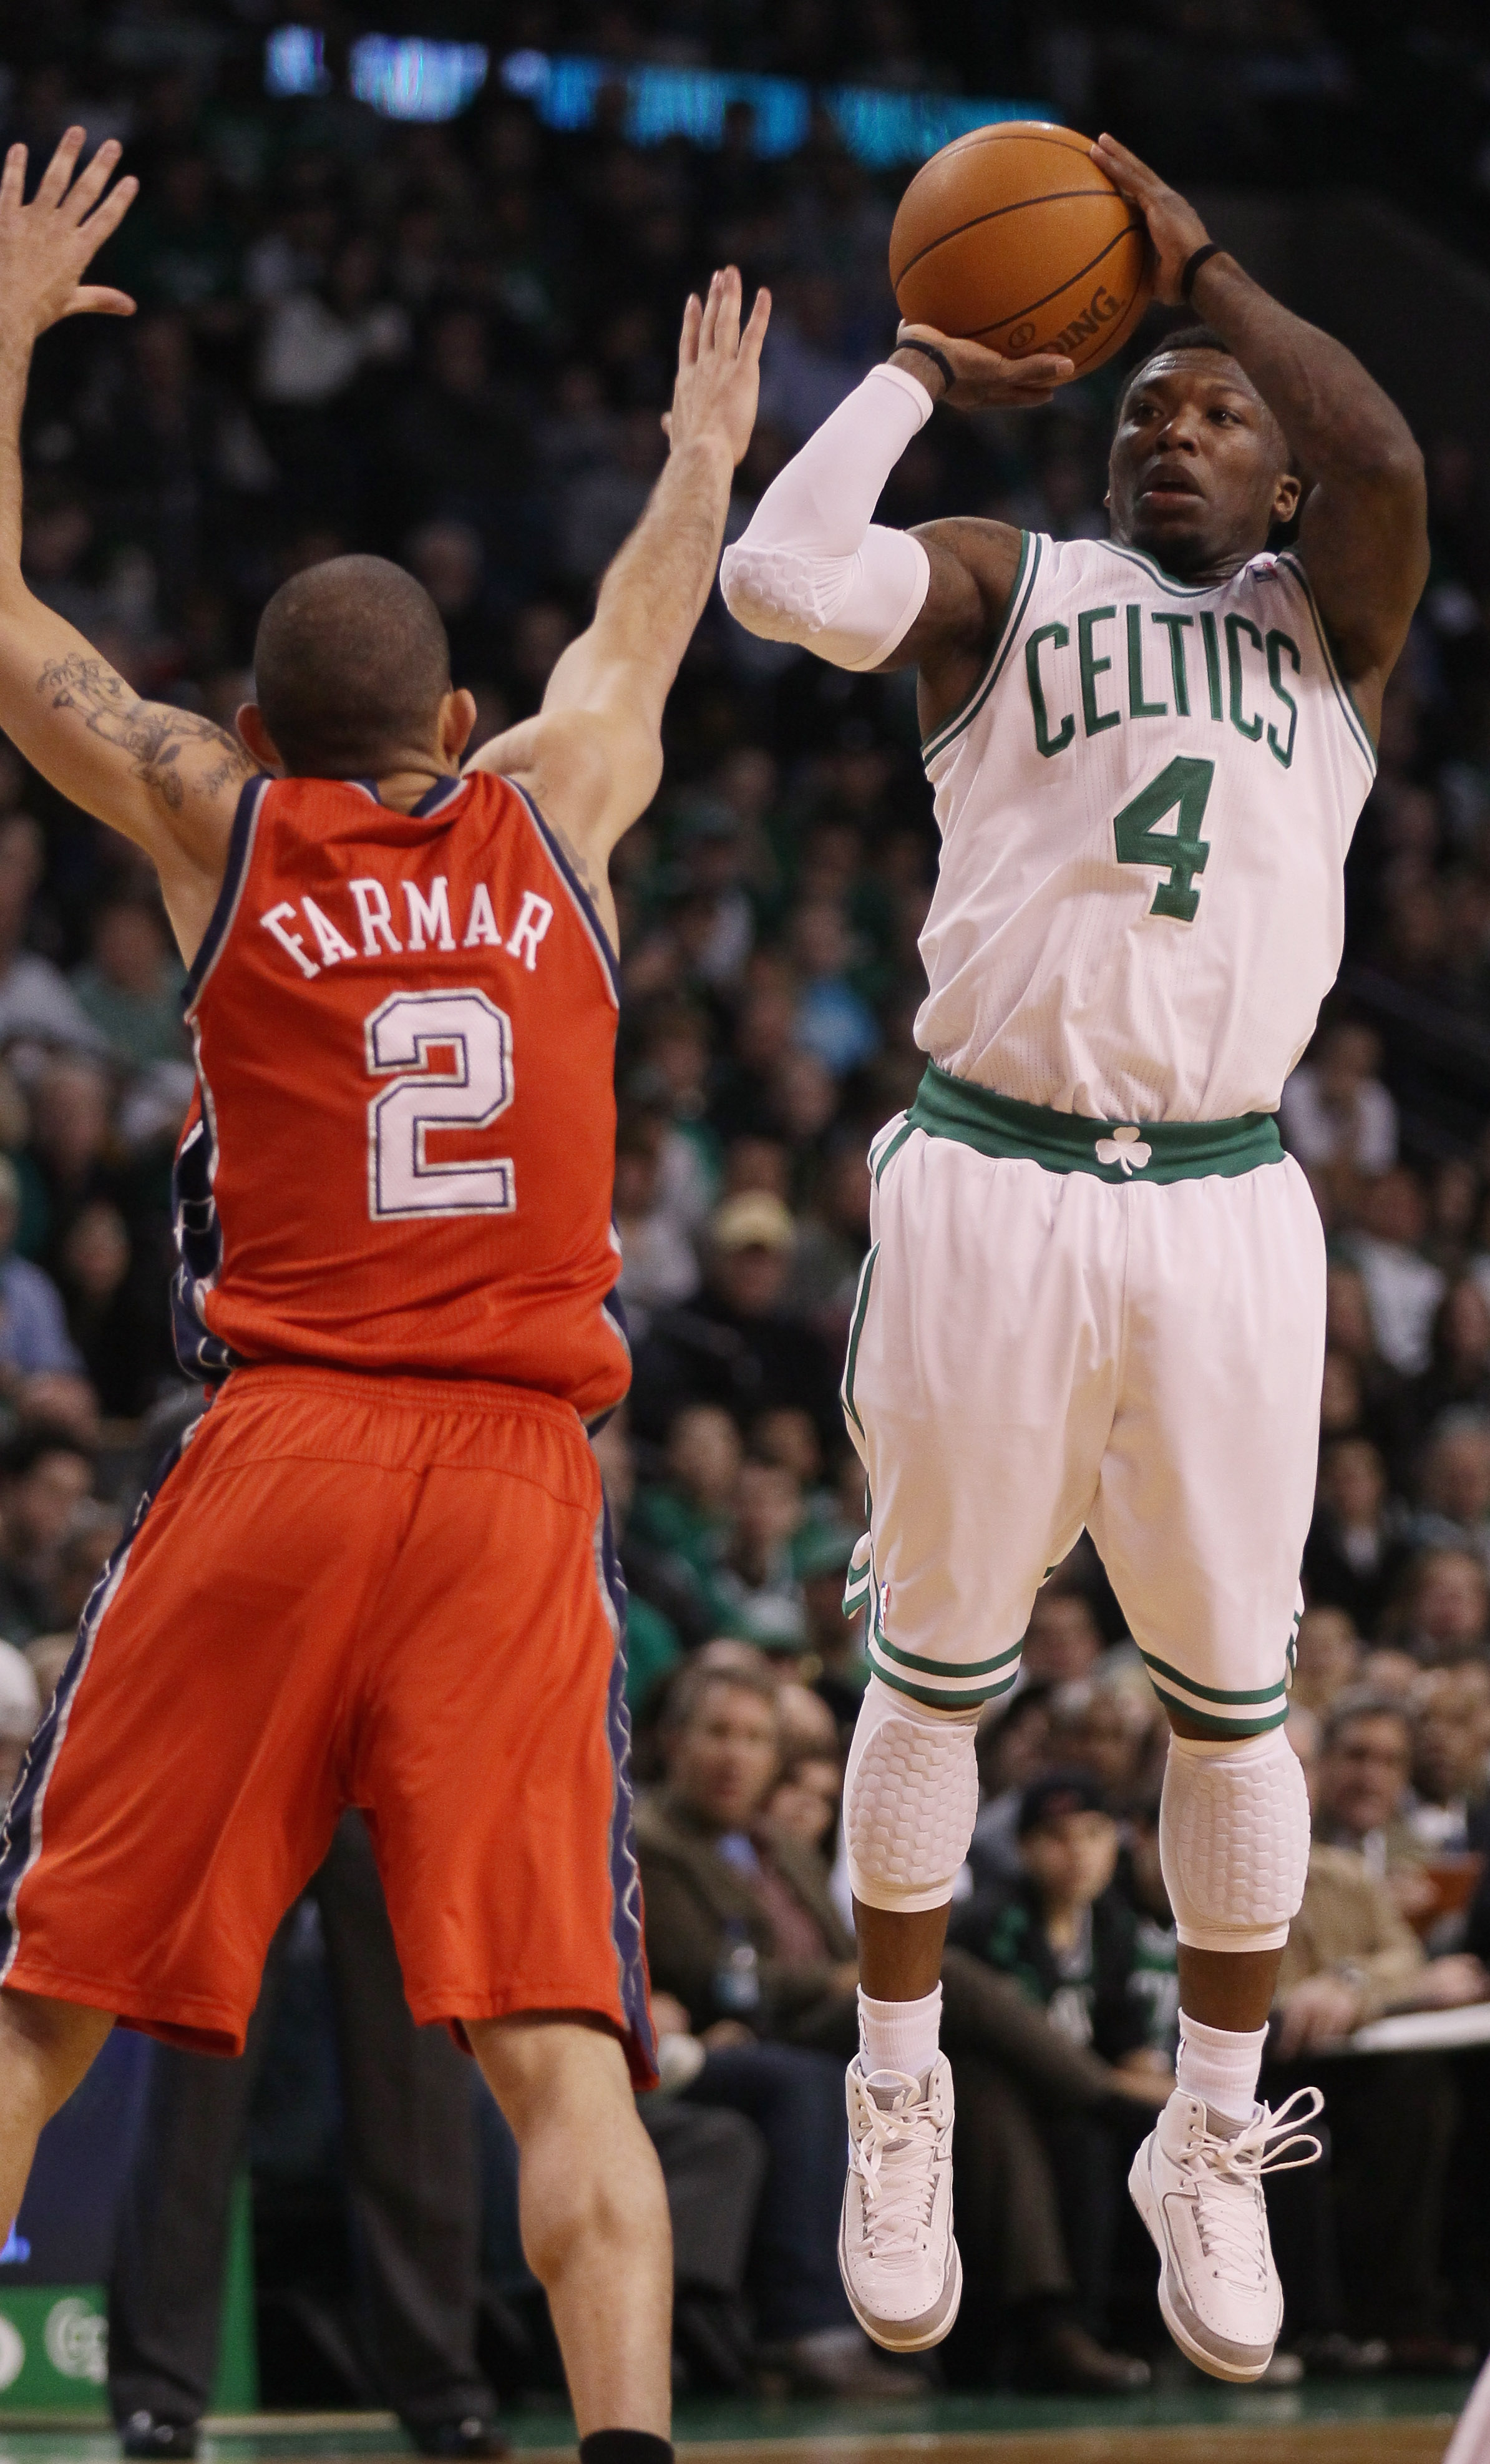 BOSTON - NOVEMBER 24:  Nate Robinson #4 of the Boston Celtics takes a shot as Jordan Farmar #2 of the New Jersey Nets defends on November 24, 2010 at the TD Garden in Boston, Massachusetts. NOTE TO USER: User expressly acknowledges and agrees that, by dow